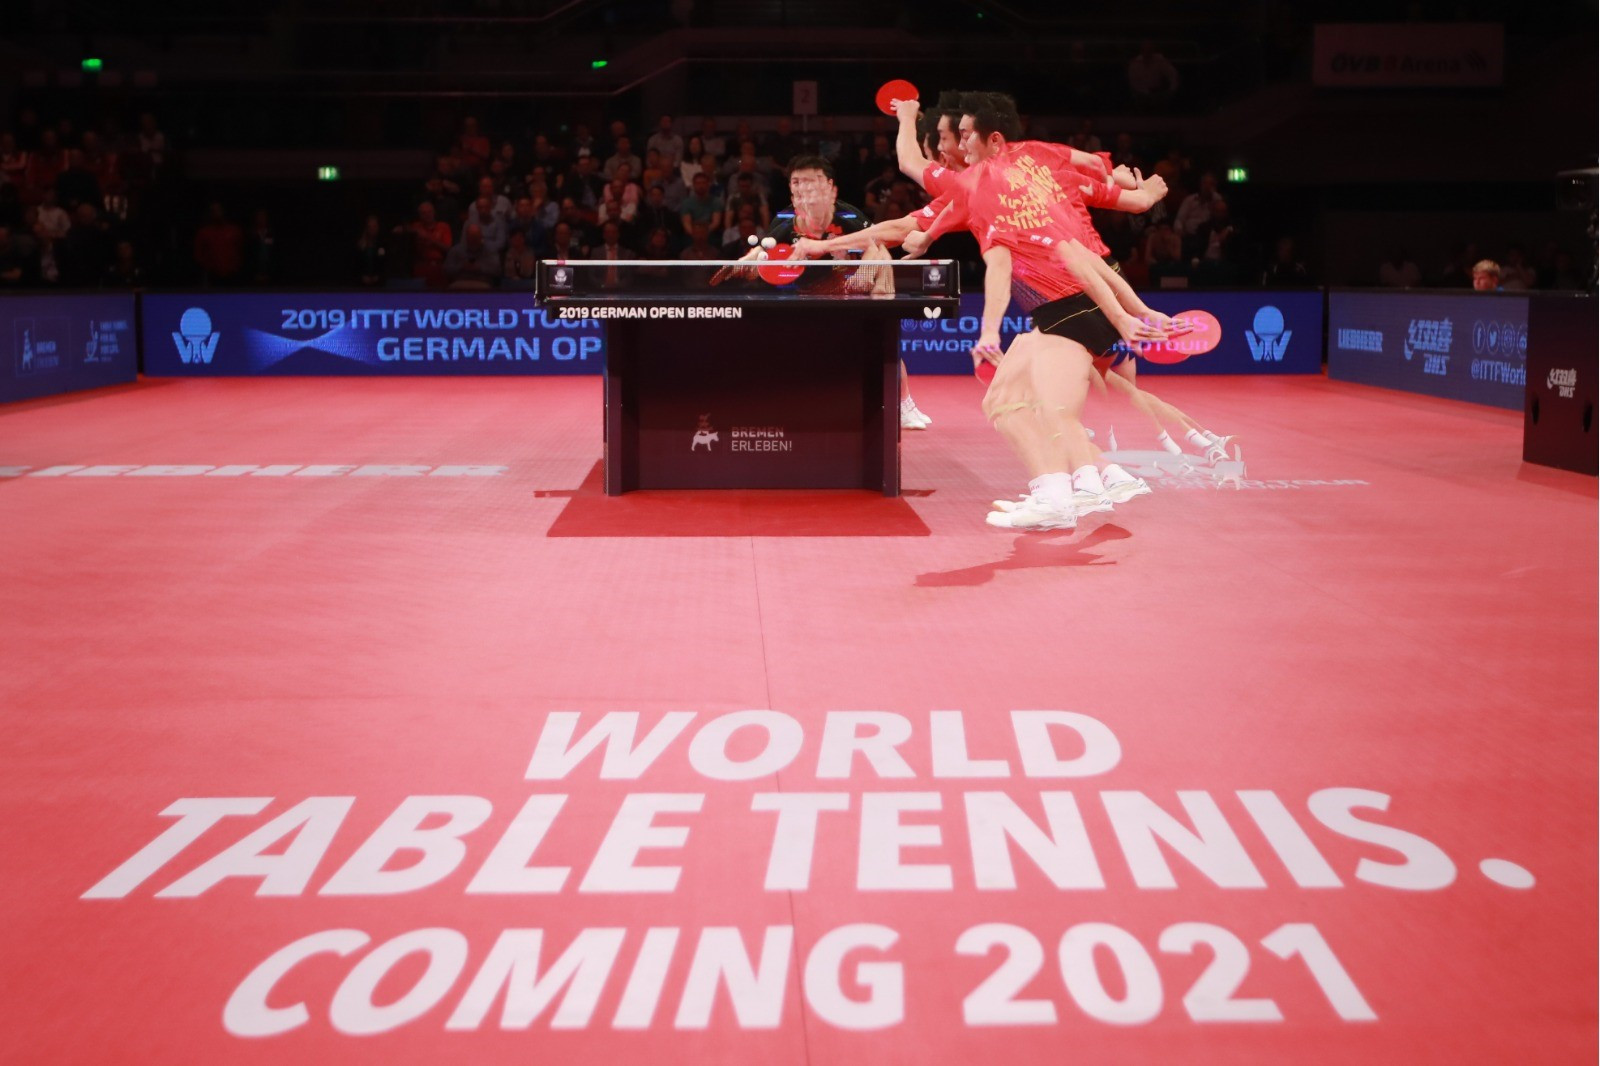 ITTF announce plans to become World Table Tennis in 2021